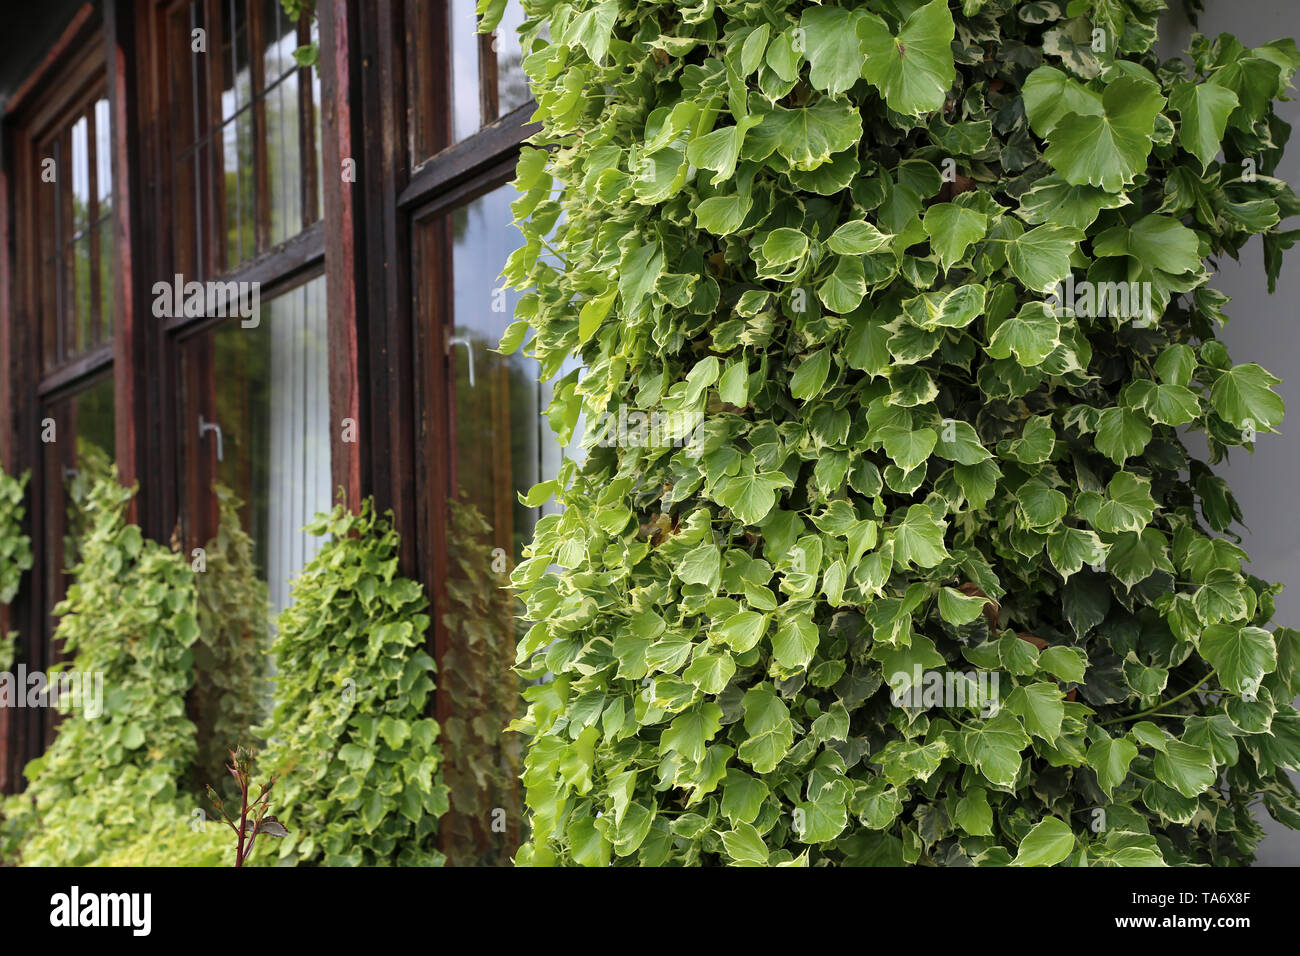 Ivy. creeping shrubs clinging to their adventitious roots of the walls. - Stock Image